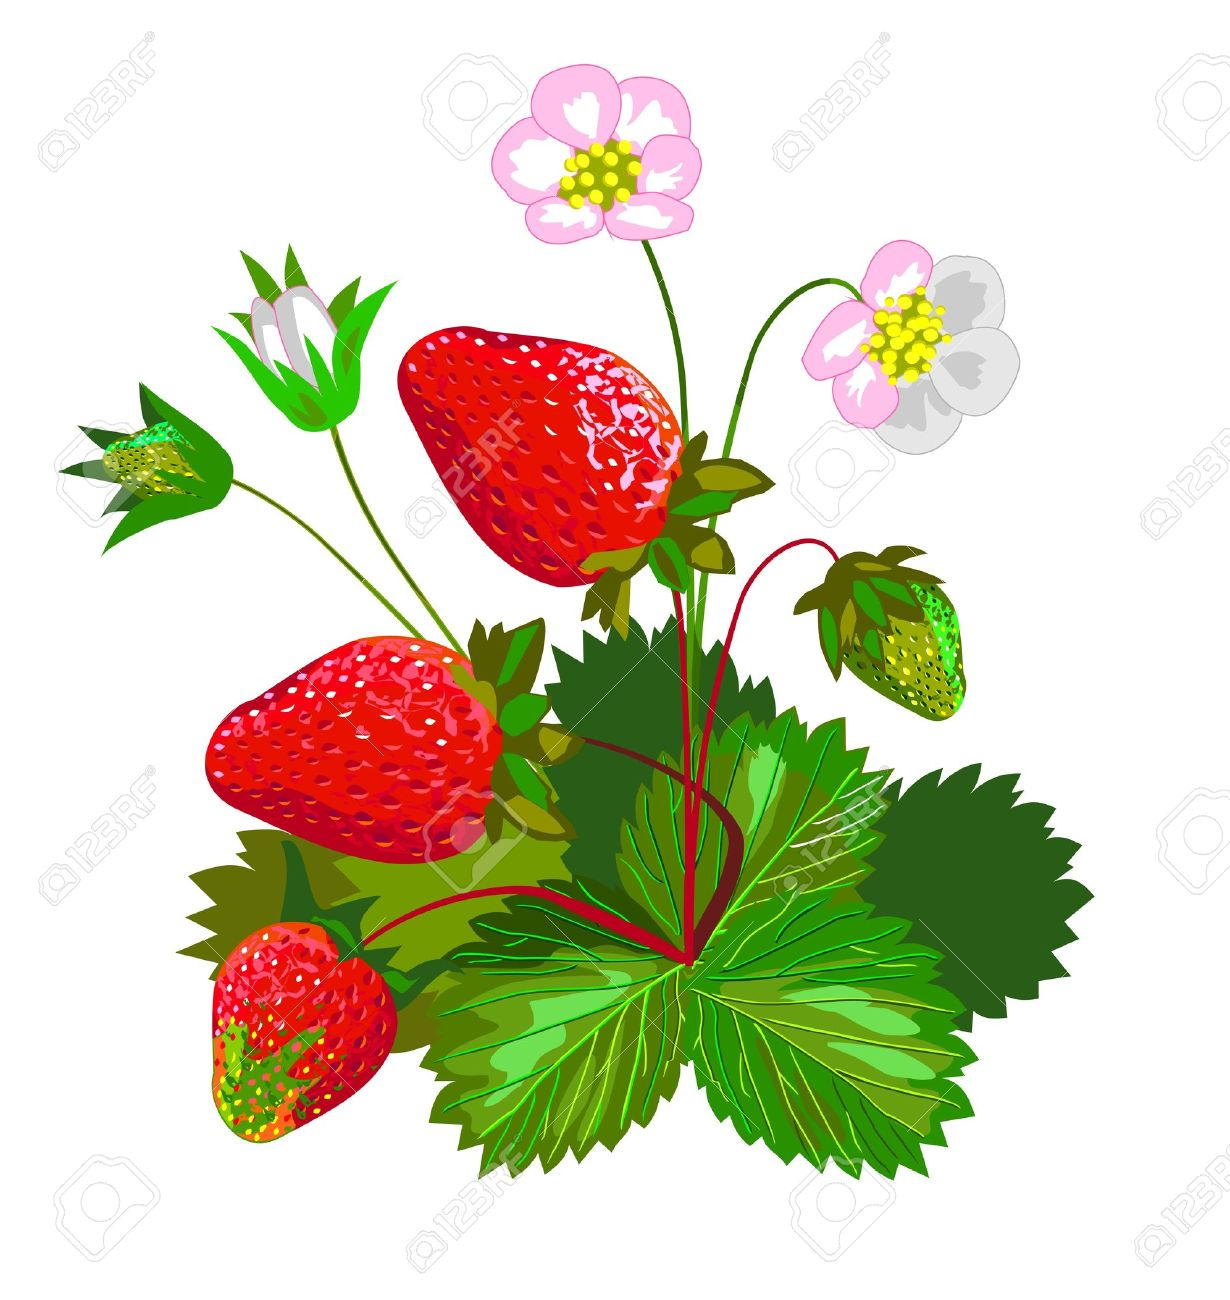 1230x1300 Images Strawberry Plant Clipart